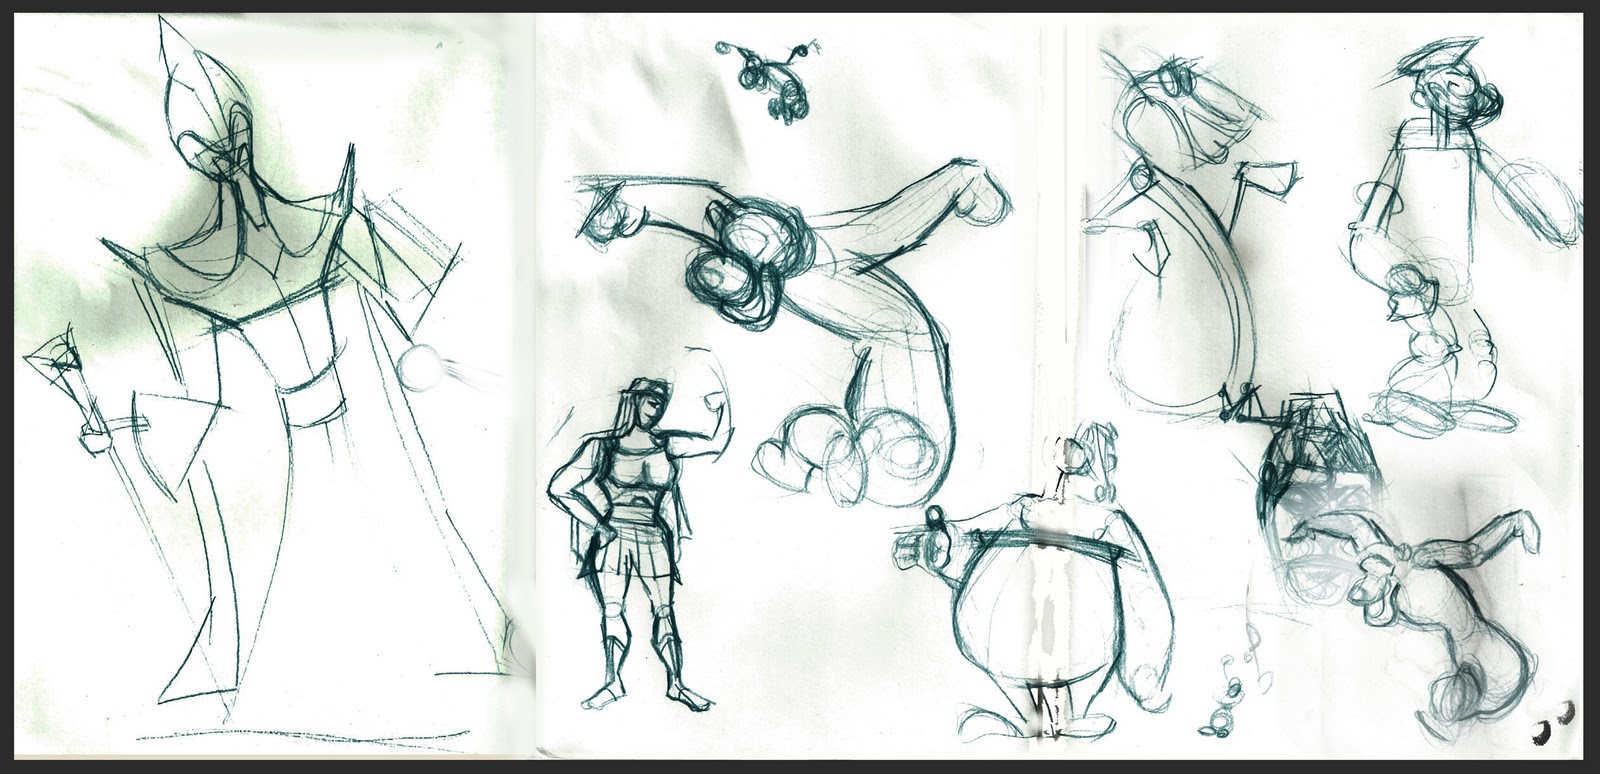 Character Design Lecture : Yolantele character design lecture